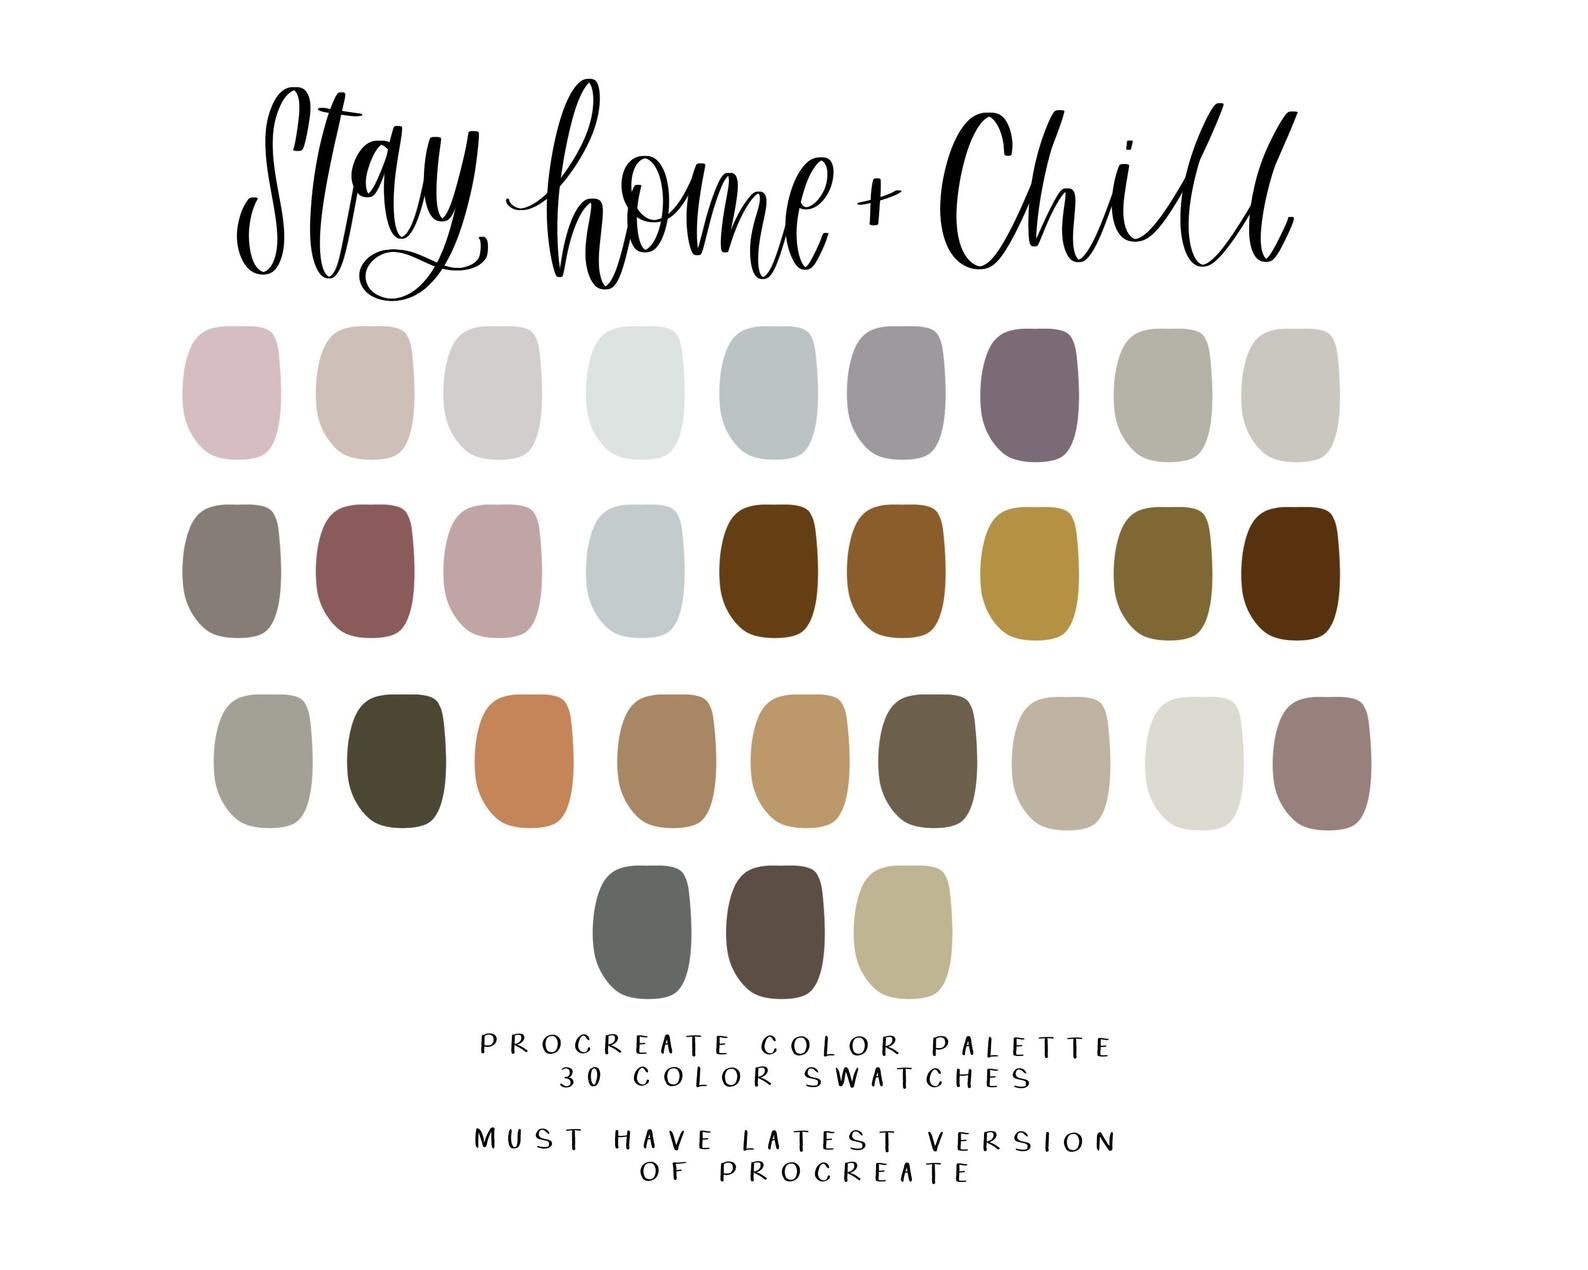 Stay Home Chill Procreate Color Palette Procreate Instant Etsy In 2020 Color Palette Color Palette Design Palette